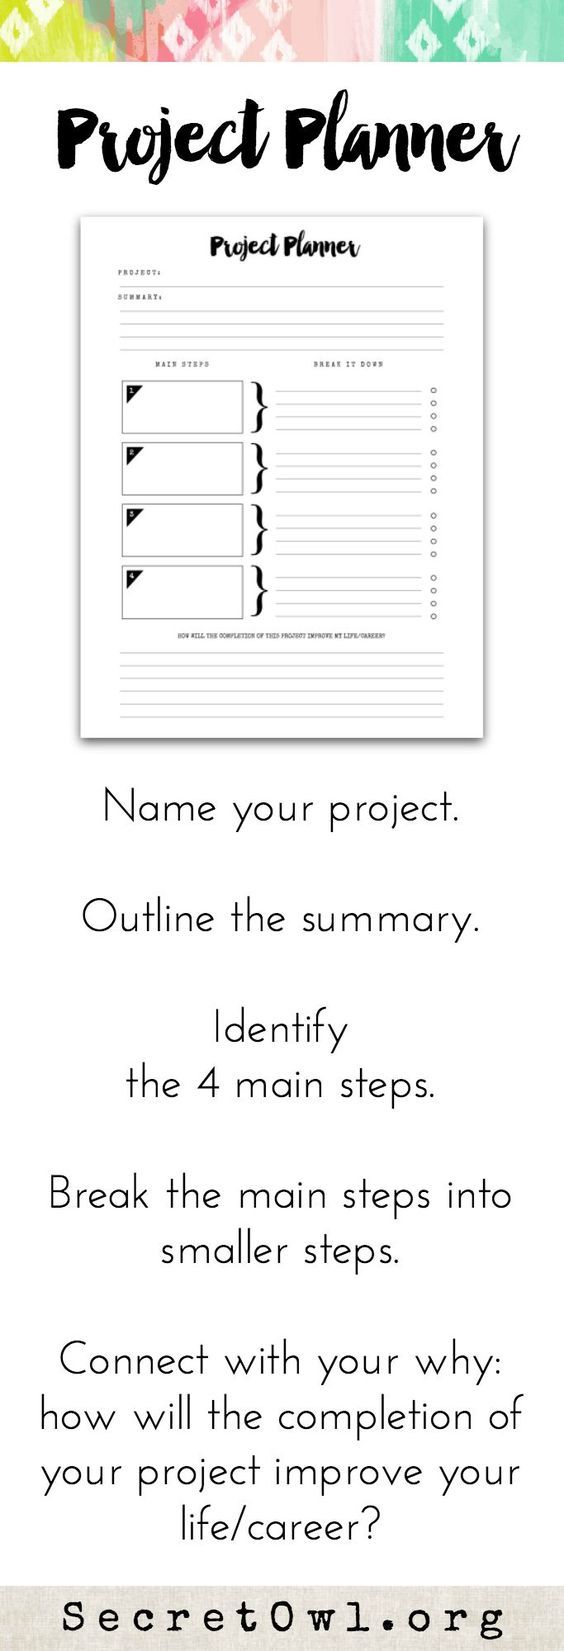 This tool has helped me live my life on an upward spiral and I'm excited that it is now my best-selling product here on Etsy because that means I am getting to help so many other people do the same. It's full of 26 minimalist & elegant printables. They are crafted to help you stay organized and have clarity around your projects, goals, schedule, habits and, well, LIFE. :) #ad #planner #ultimatelifebinder